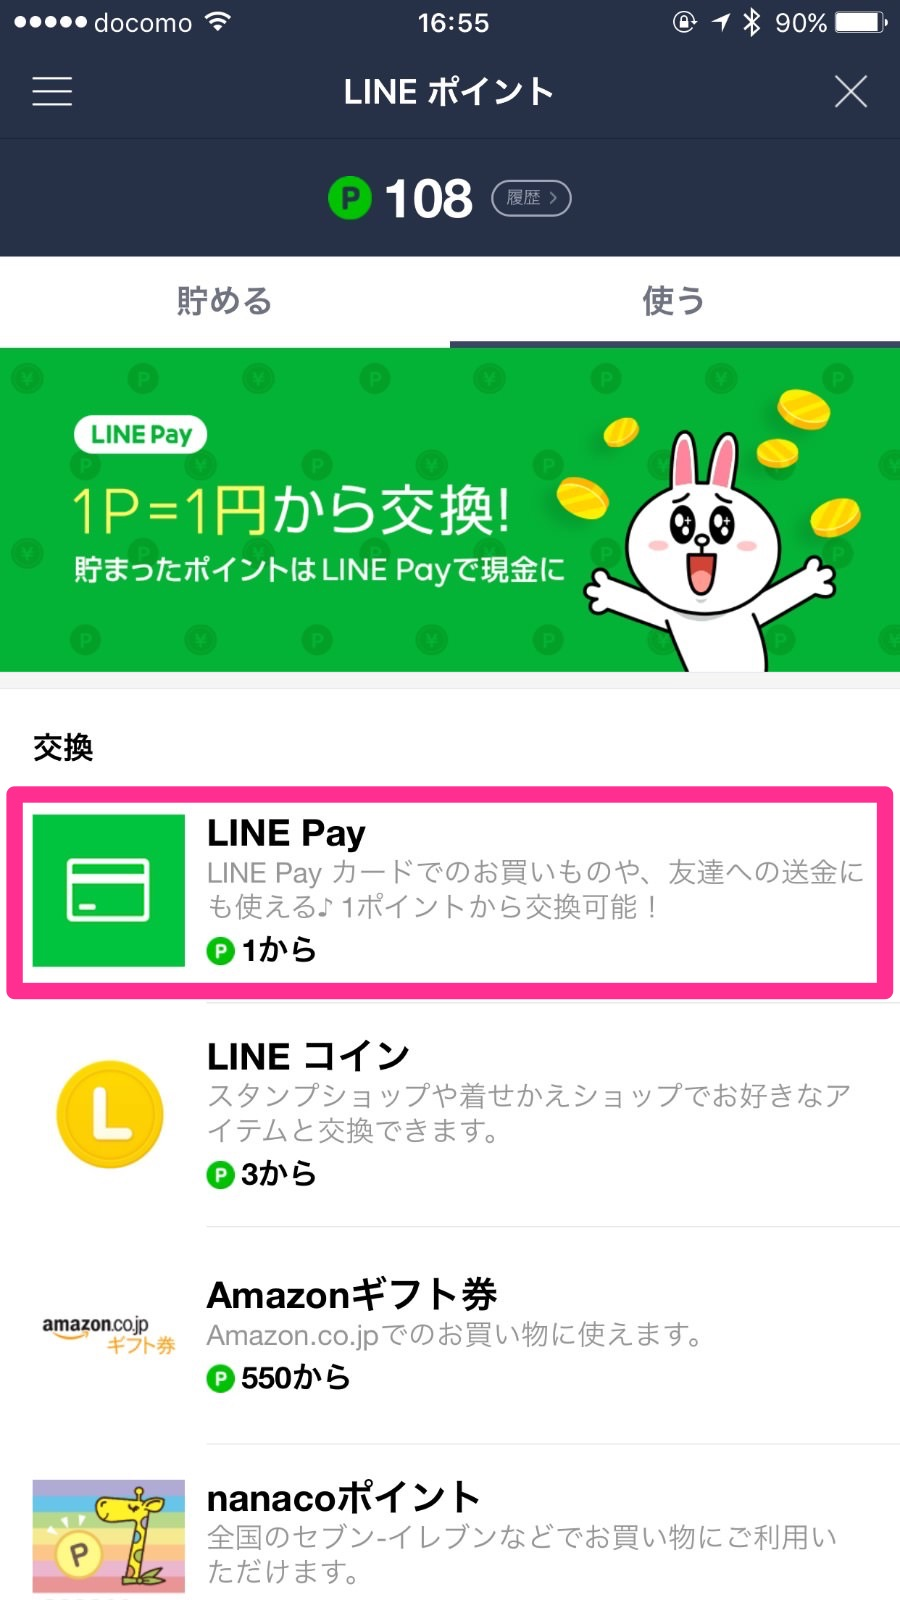 Line pay card point 0667